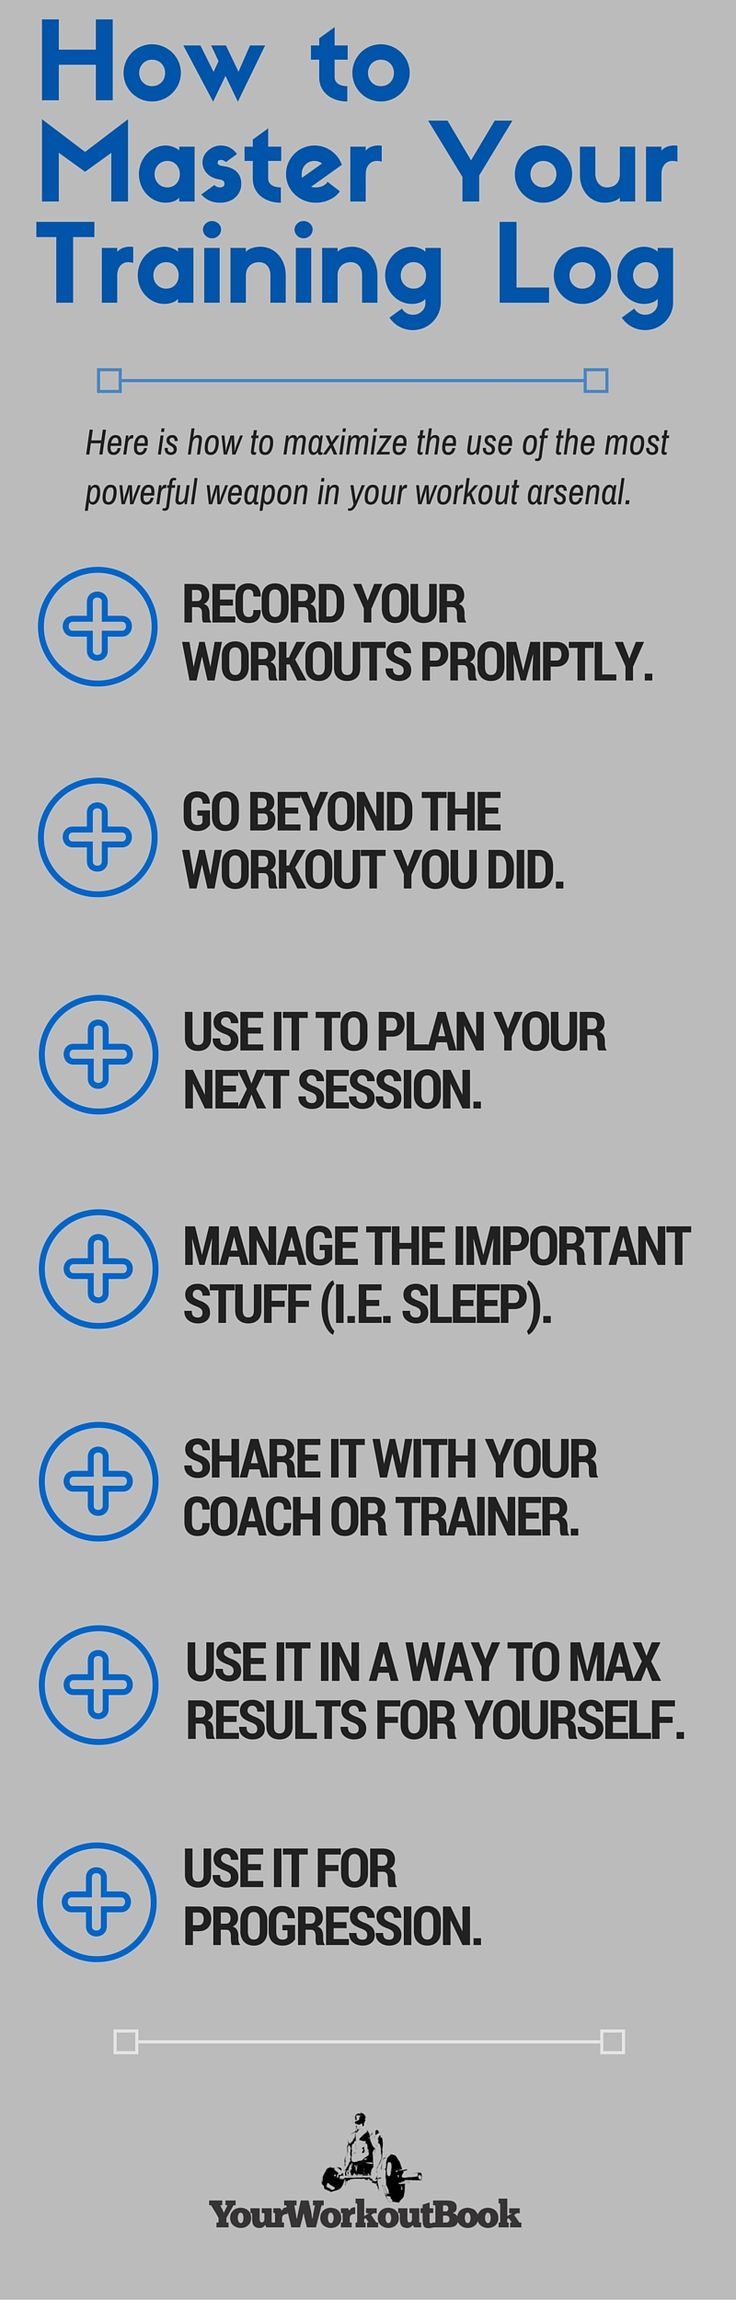 How to Master Your Workout Log Book | http://www.yourworkoutbook.com/master-the-training-log/